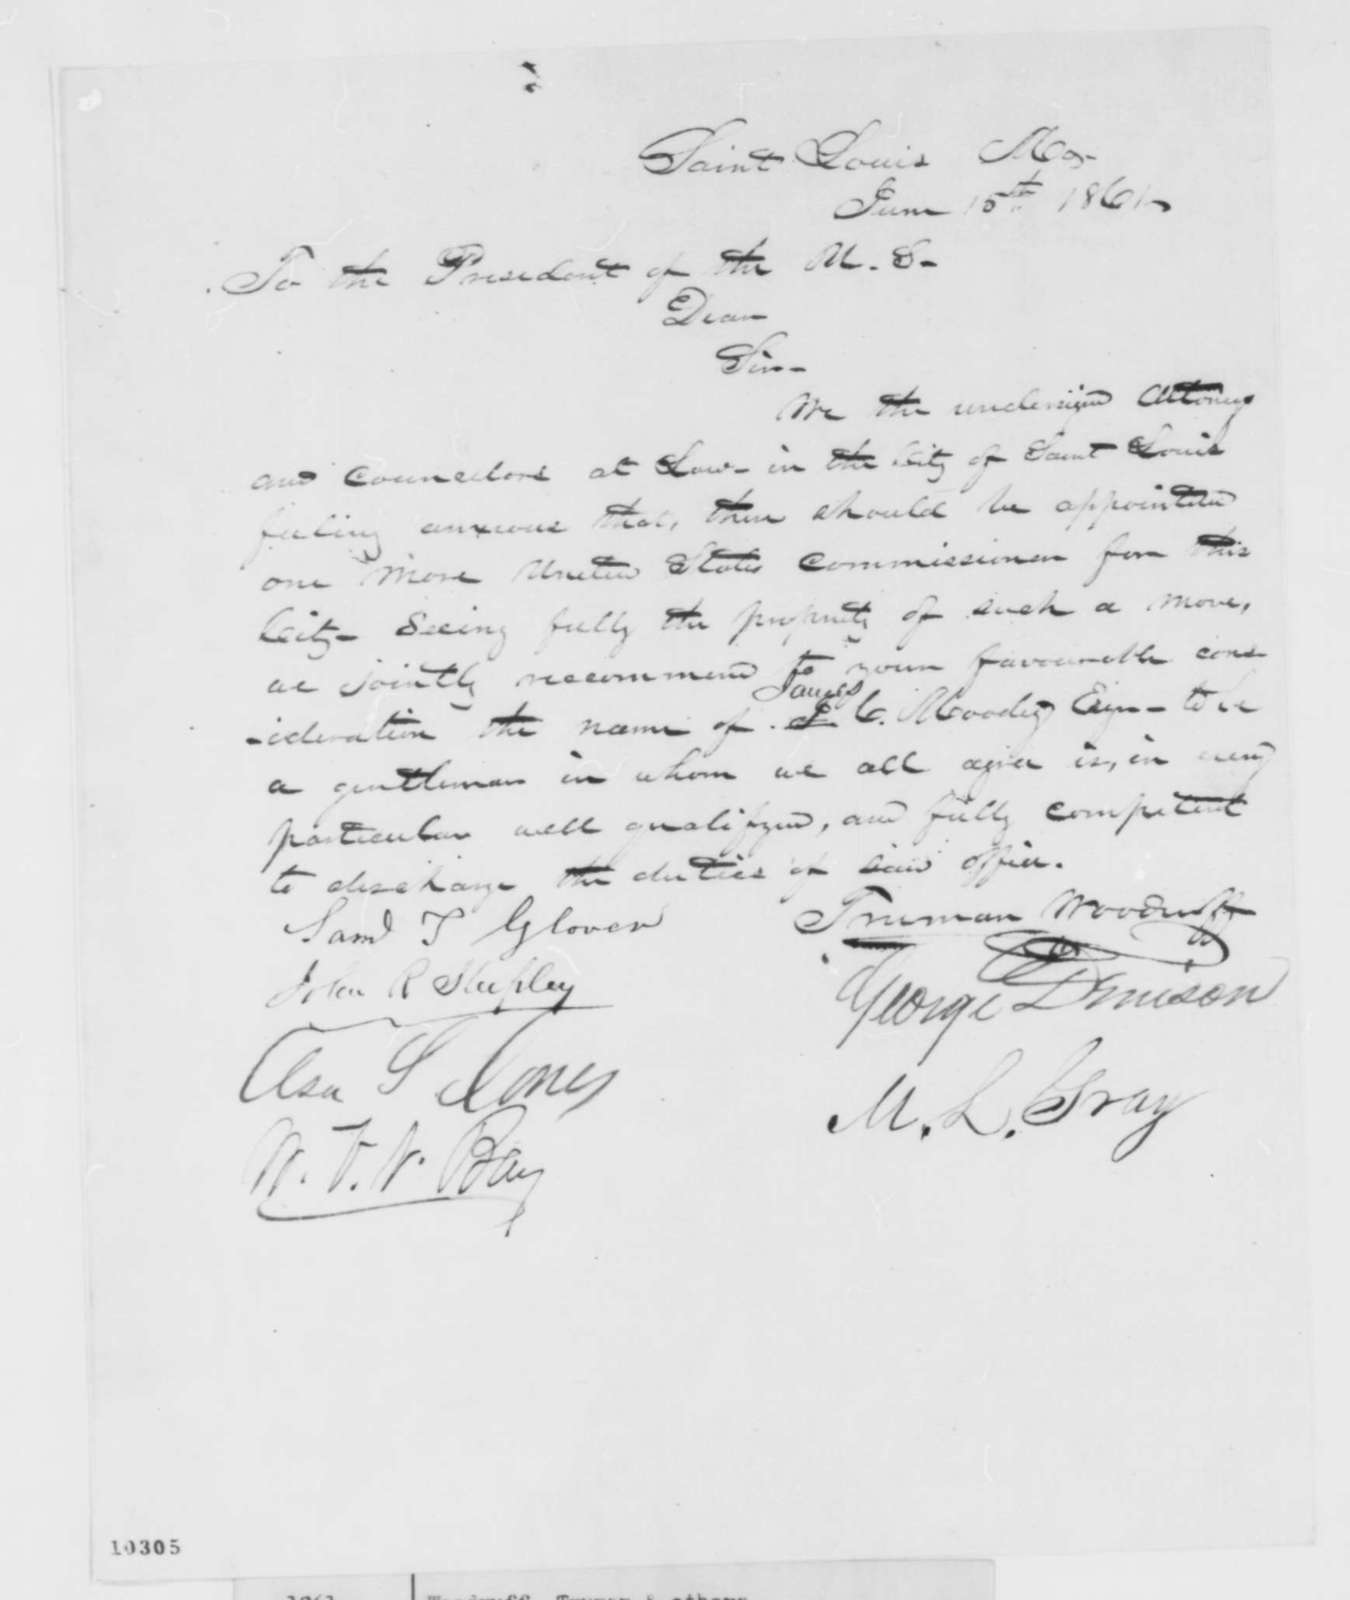 Truman Woodruff, et al. to Abraham Lincoln, Saturday, June 15, 1861  (Petition recommending U.S. Commissioner)